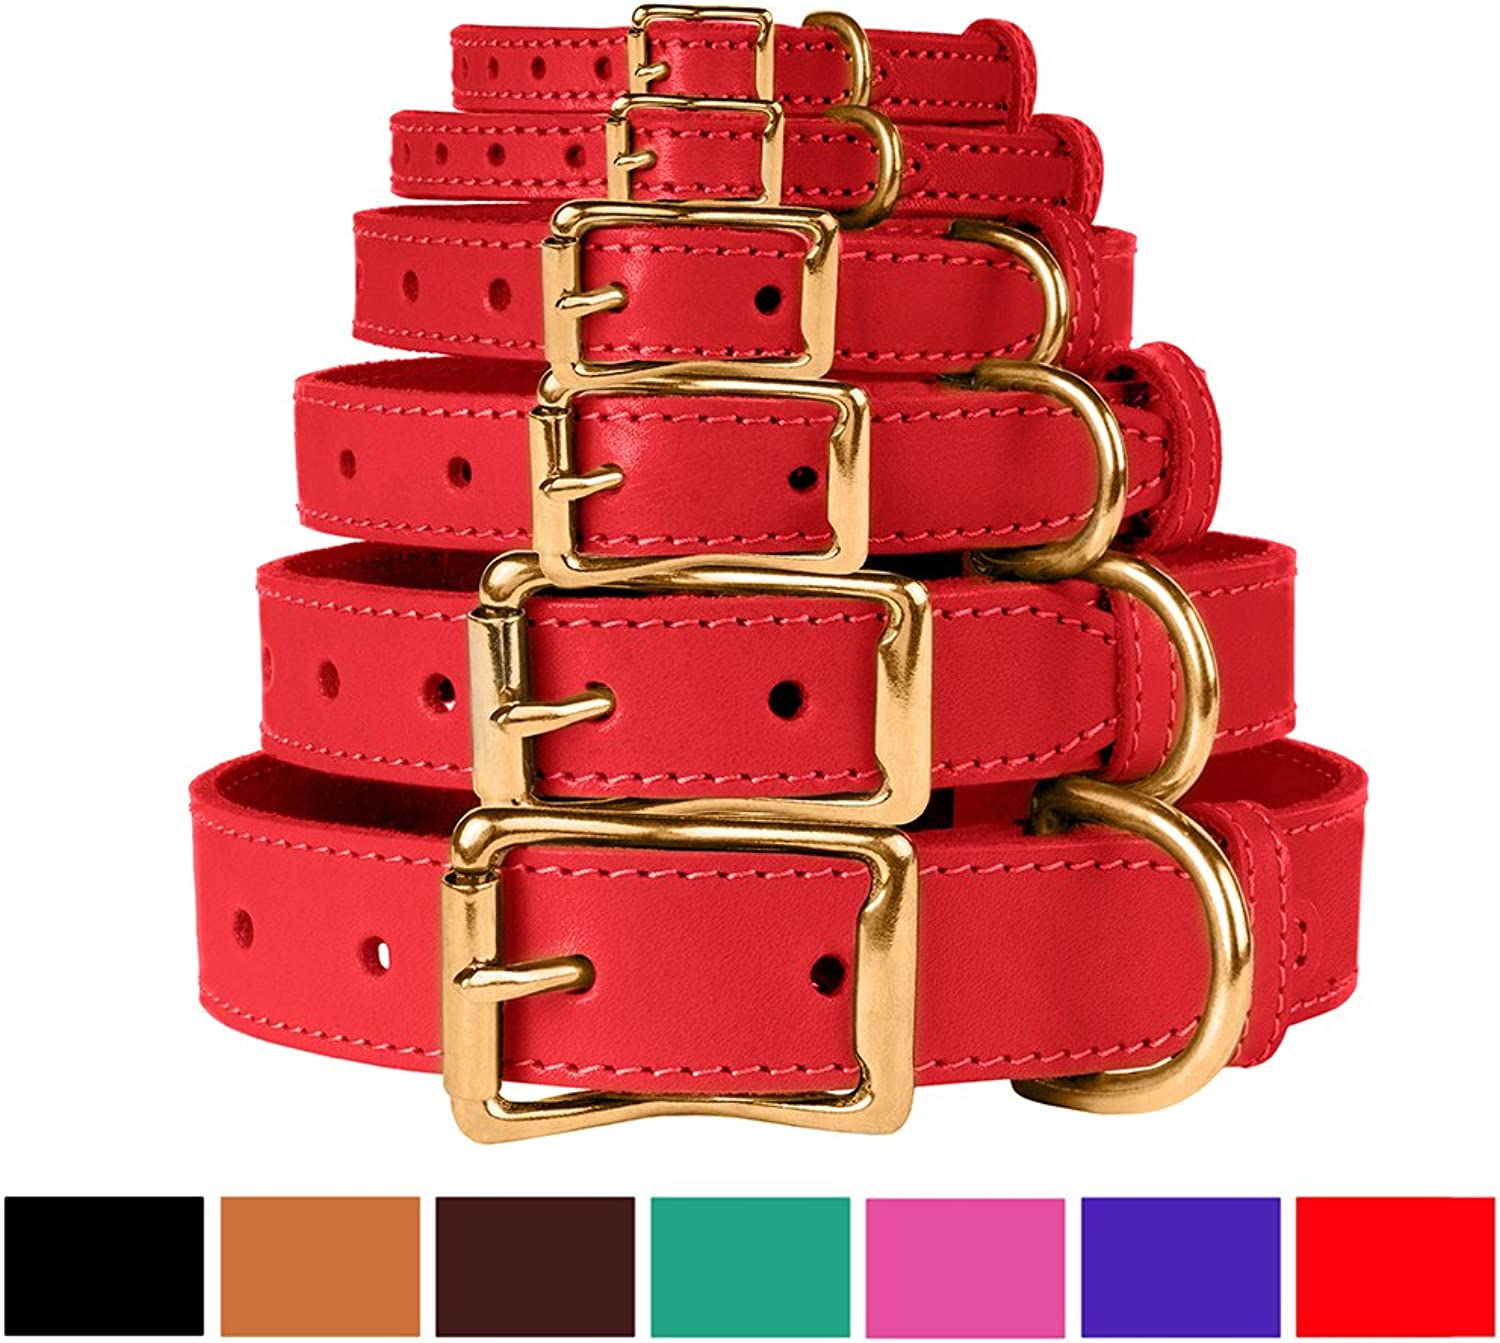 BronzeDog Leather Dog Collar, Genuine & Durable, Brass Buckle Comfort Pet Collars Adjustable for Puppy Small Medium Large Dogs, Pink Red Black Brown Purple Green (Neck Size 11 15 , Red)